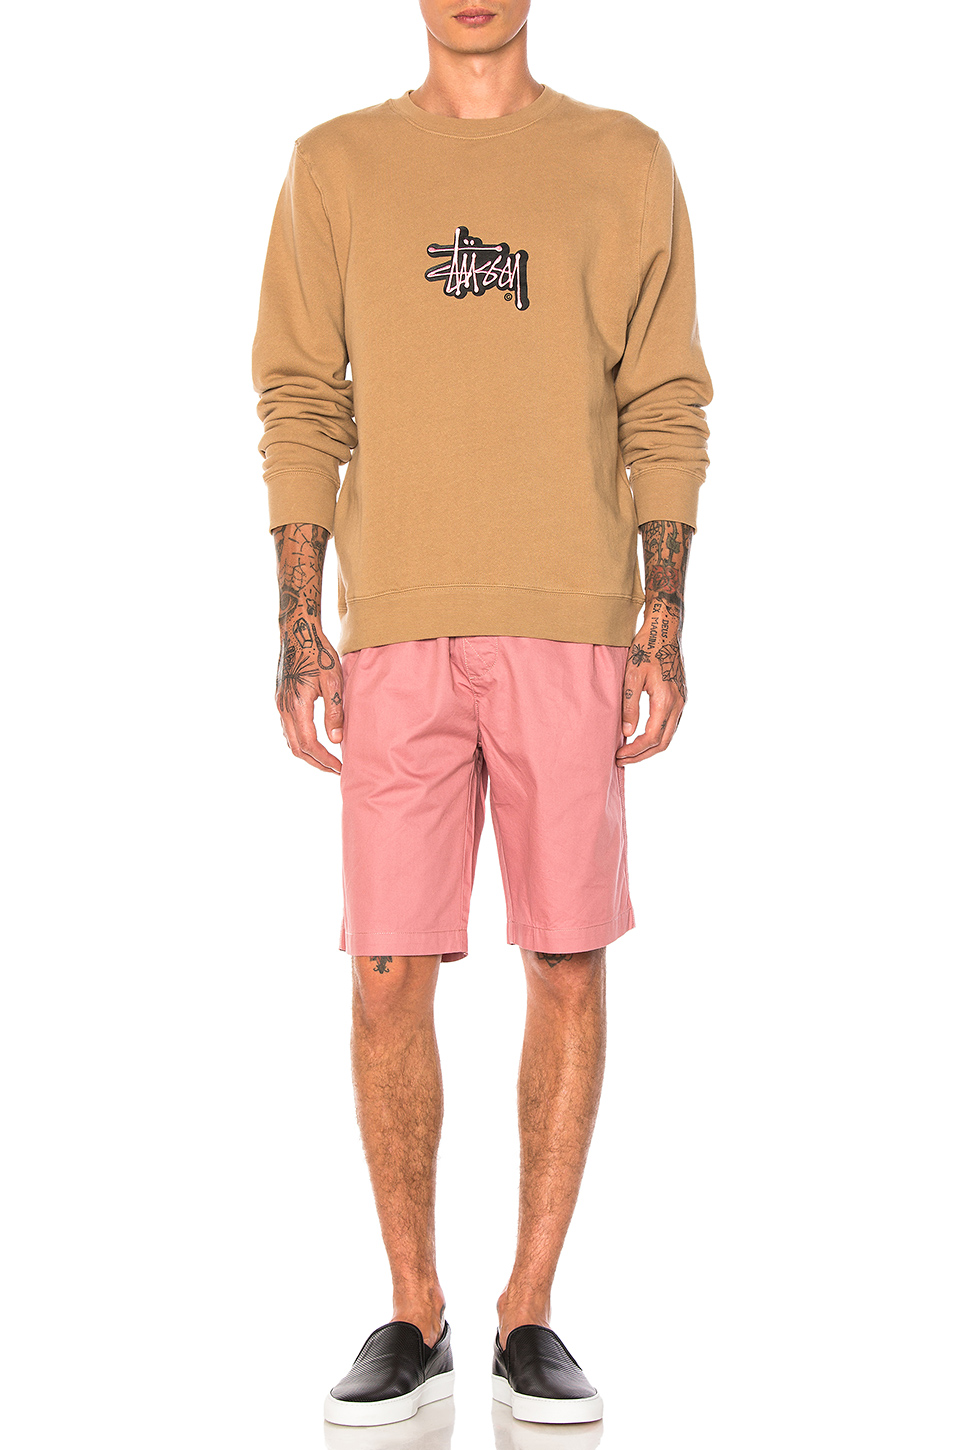 a9504f0596 Buy Original Stussy Light Twill Beach Short at Indonesia | BOBOBOBO